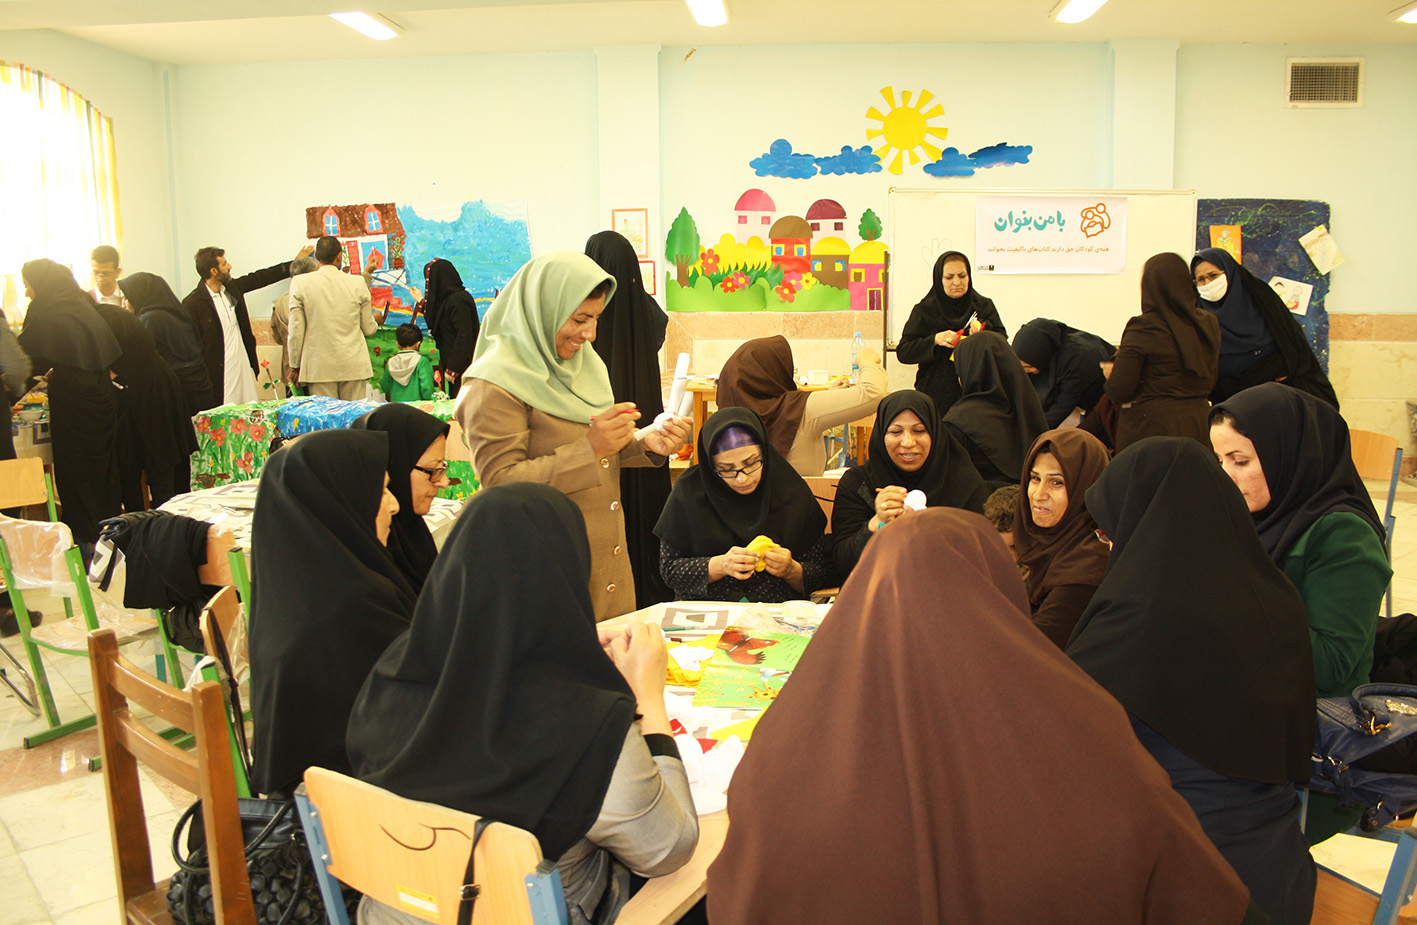 Teachers and tutors in Book Related Art Activities Workshop - Read with Me in Zahedan - Dec 2015